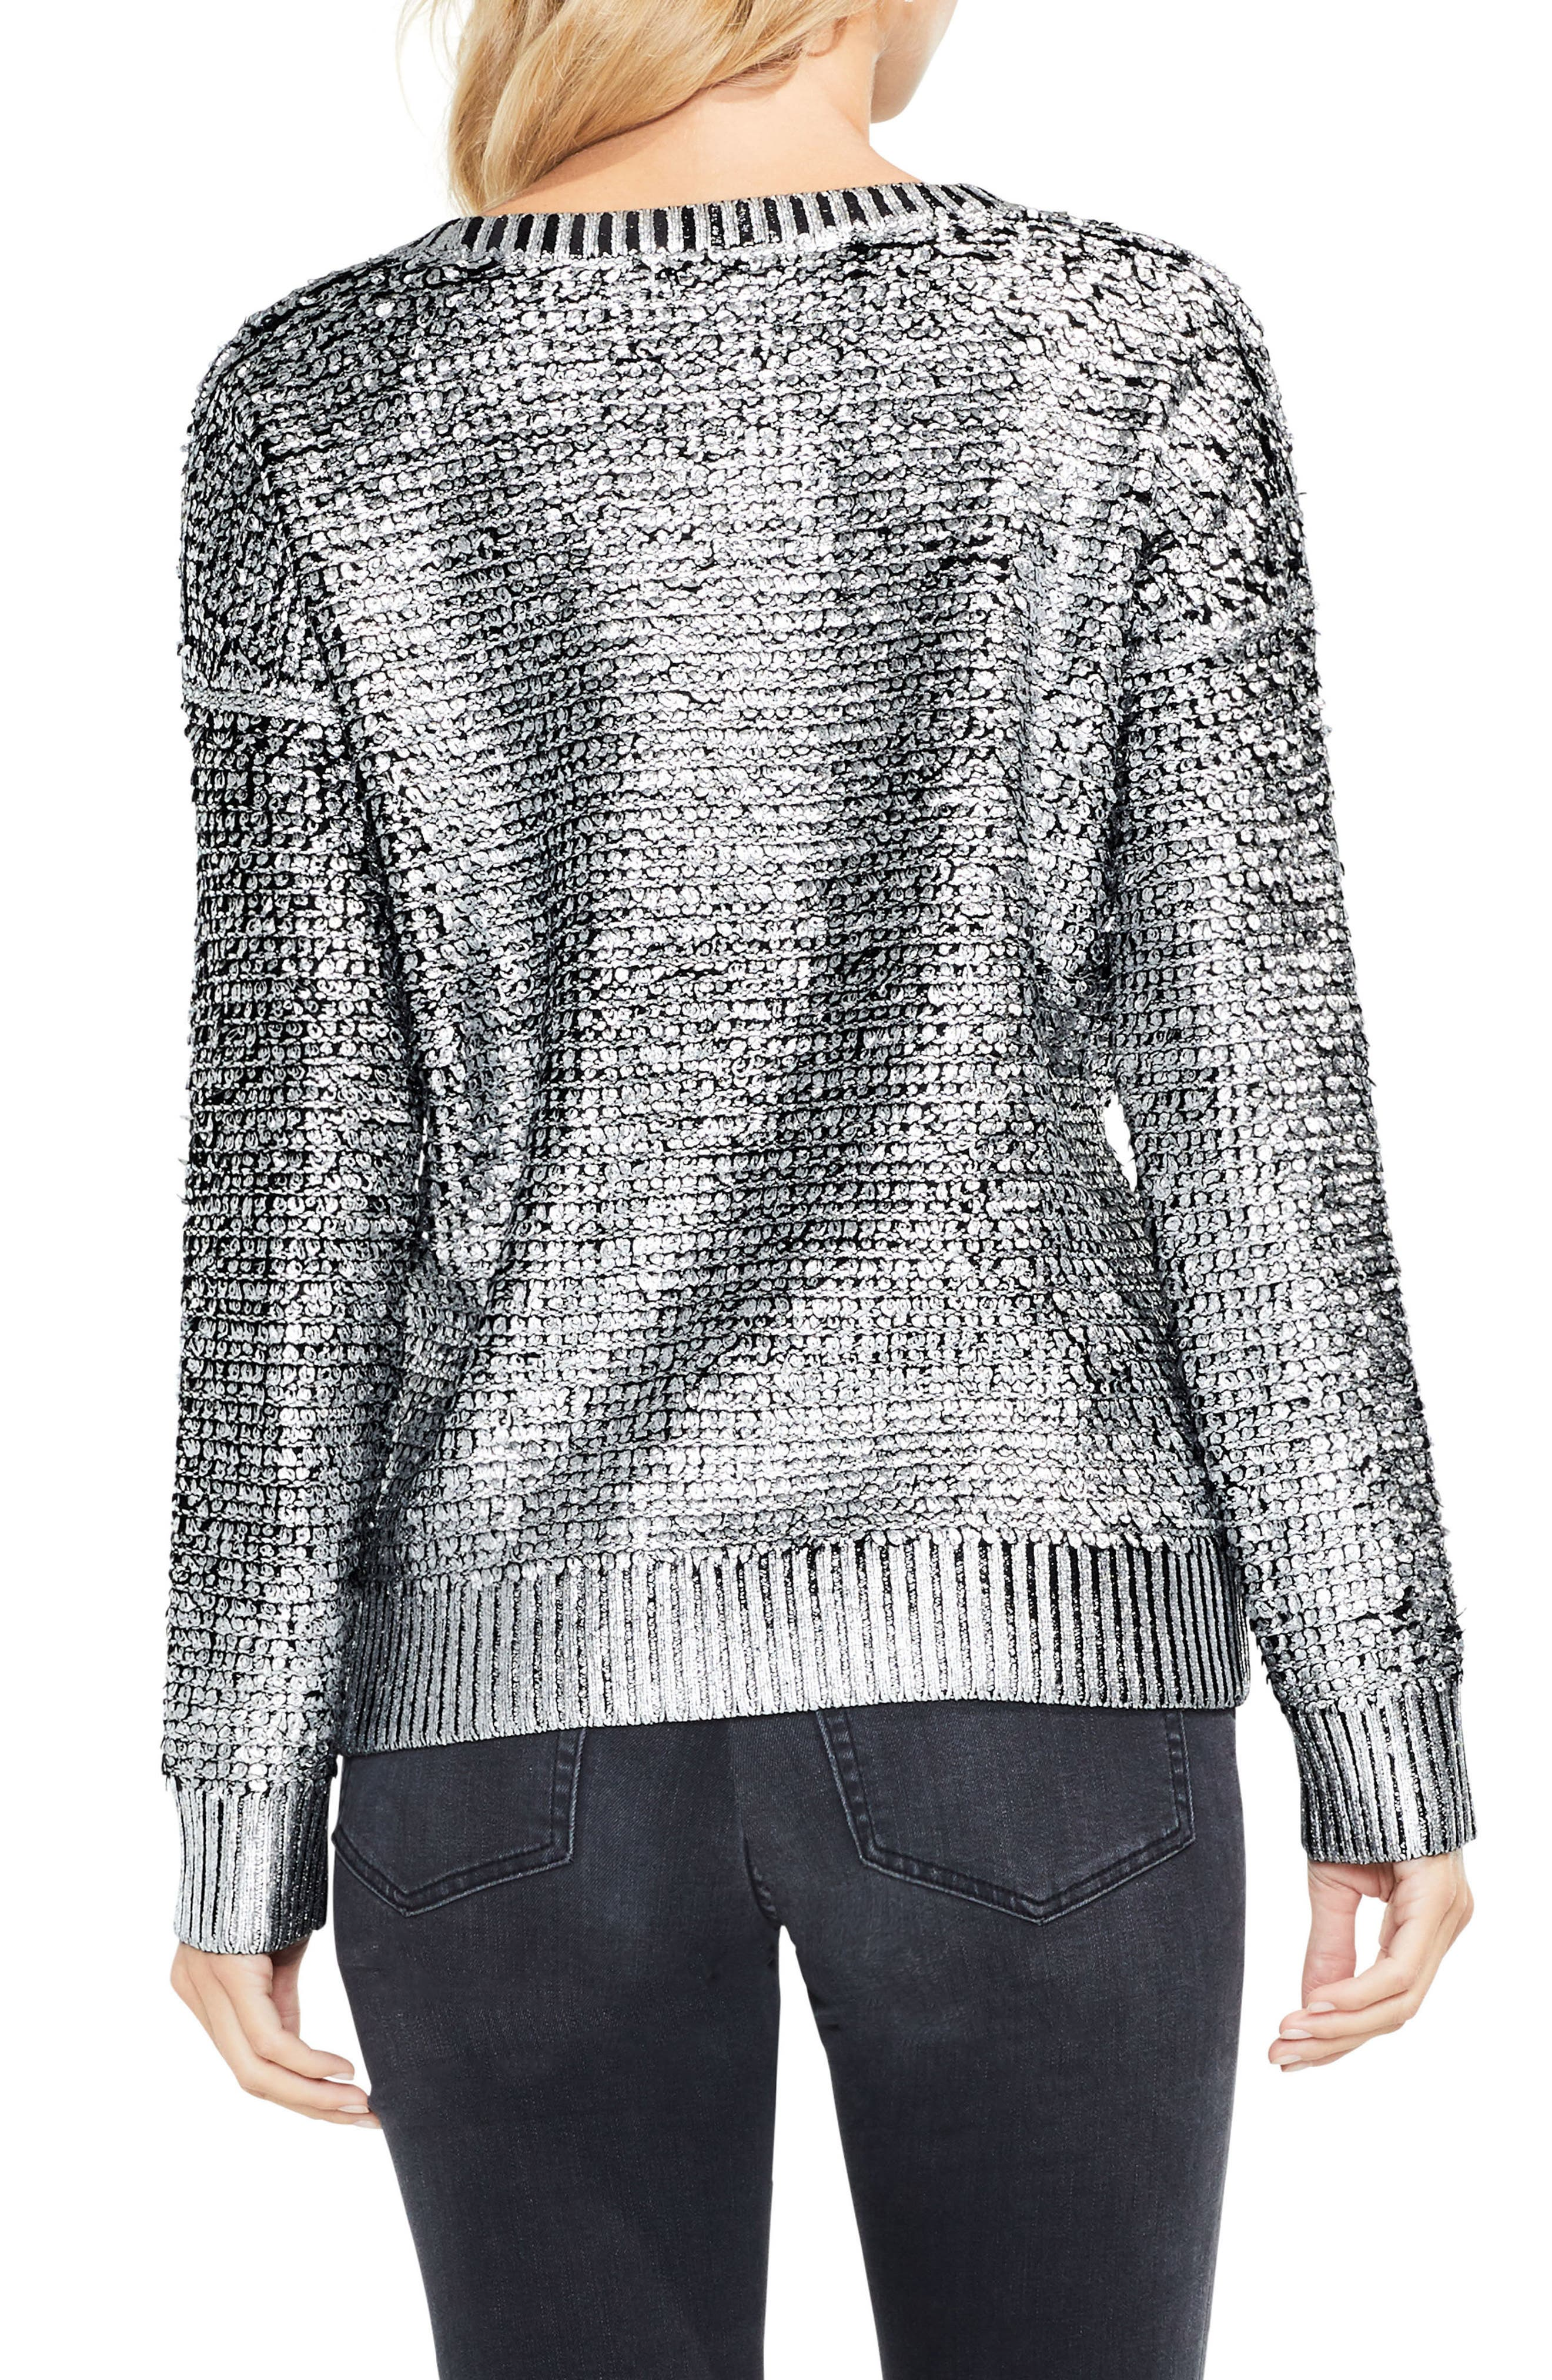 Loop Stitch Foil Print Sweater,                             Alternate thumbnail 2, color,                             006